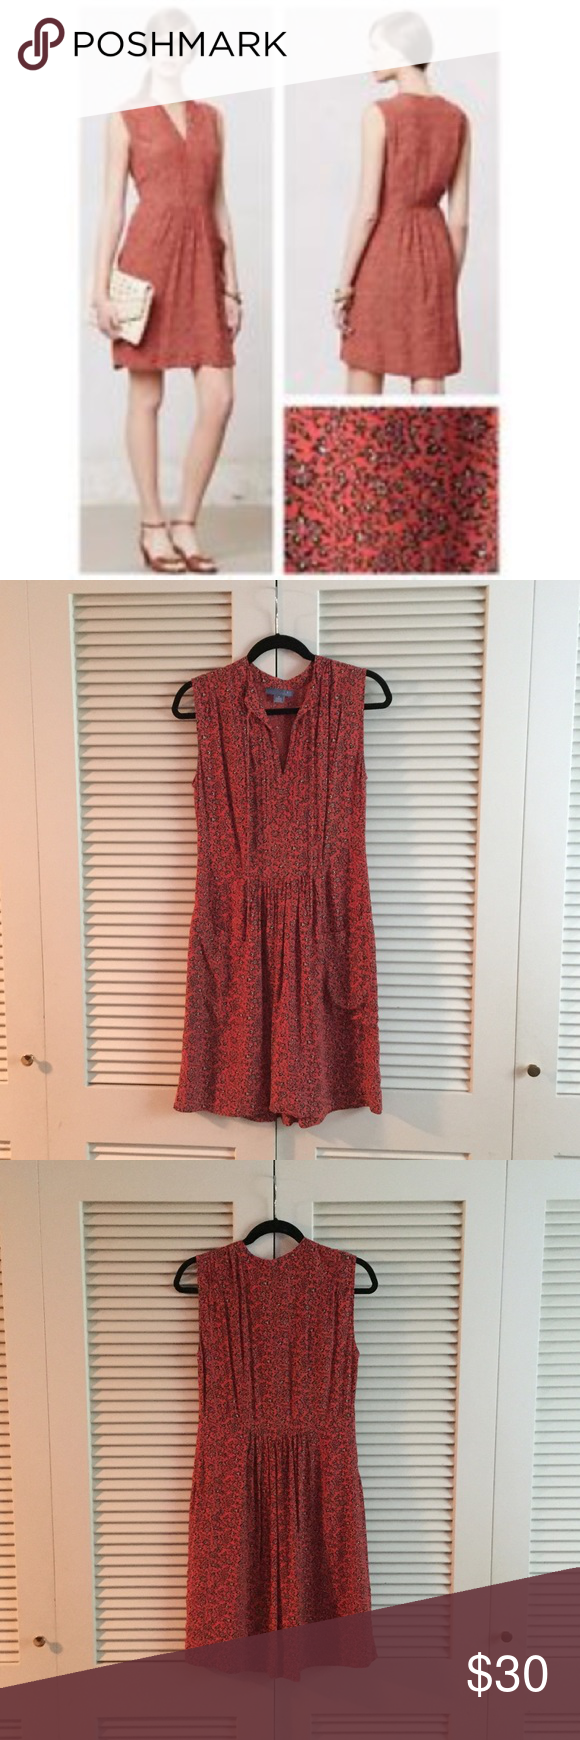 Anthropologie red floral dress by Lil, size 4 Red floral dress with pockets and zip closure on side, new without tags Anthropologie Dresses Mini